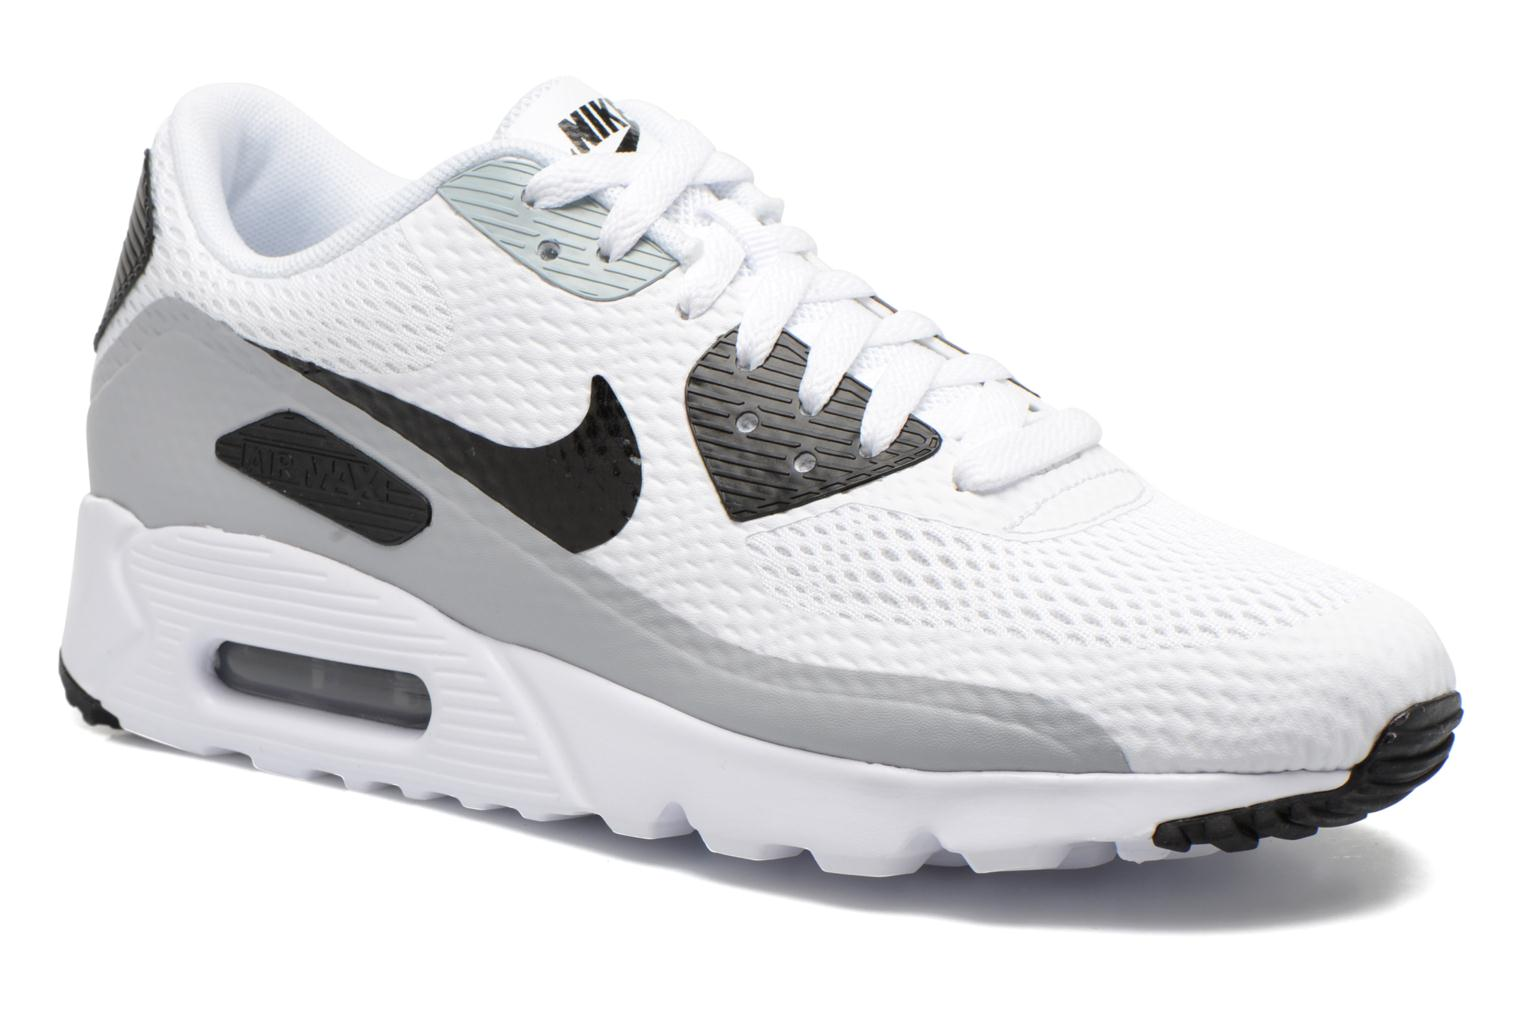 f77b0176f8b Réduction authentique avis nike air max 1 ultra essential Baskets ...